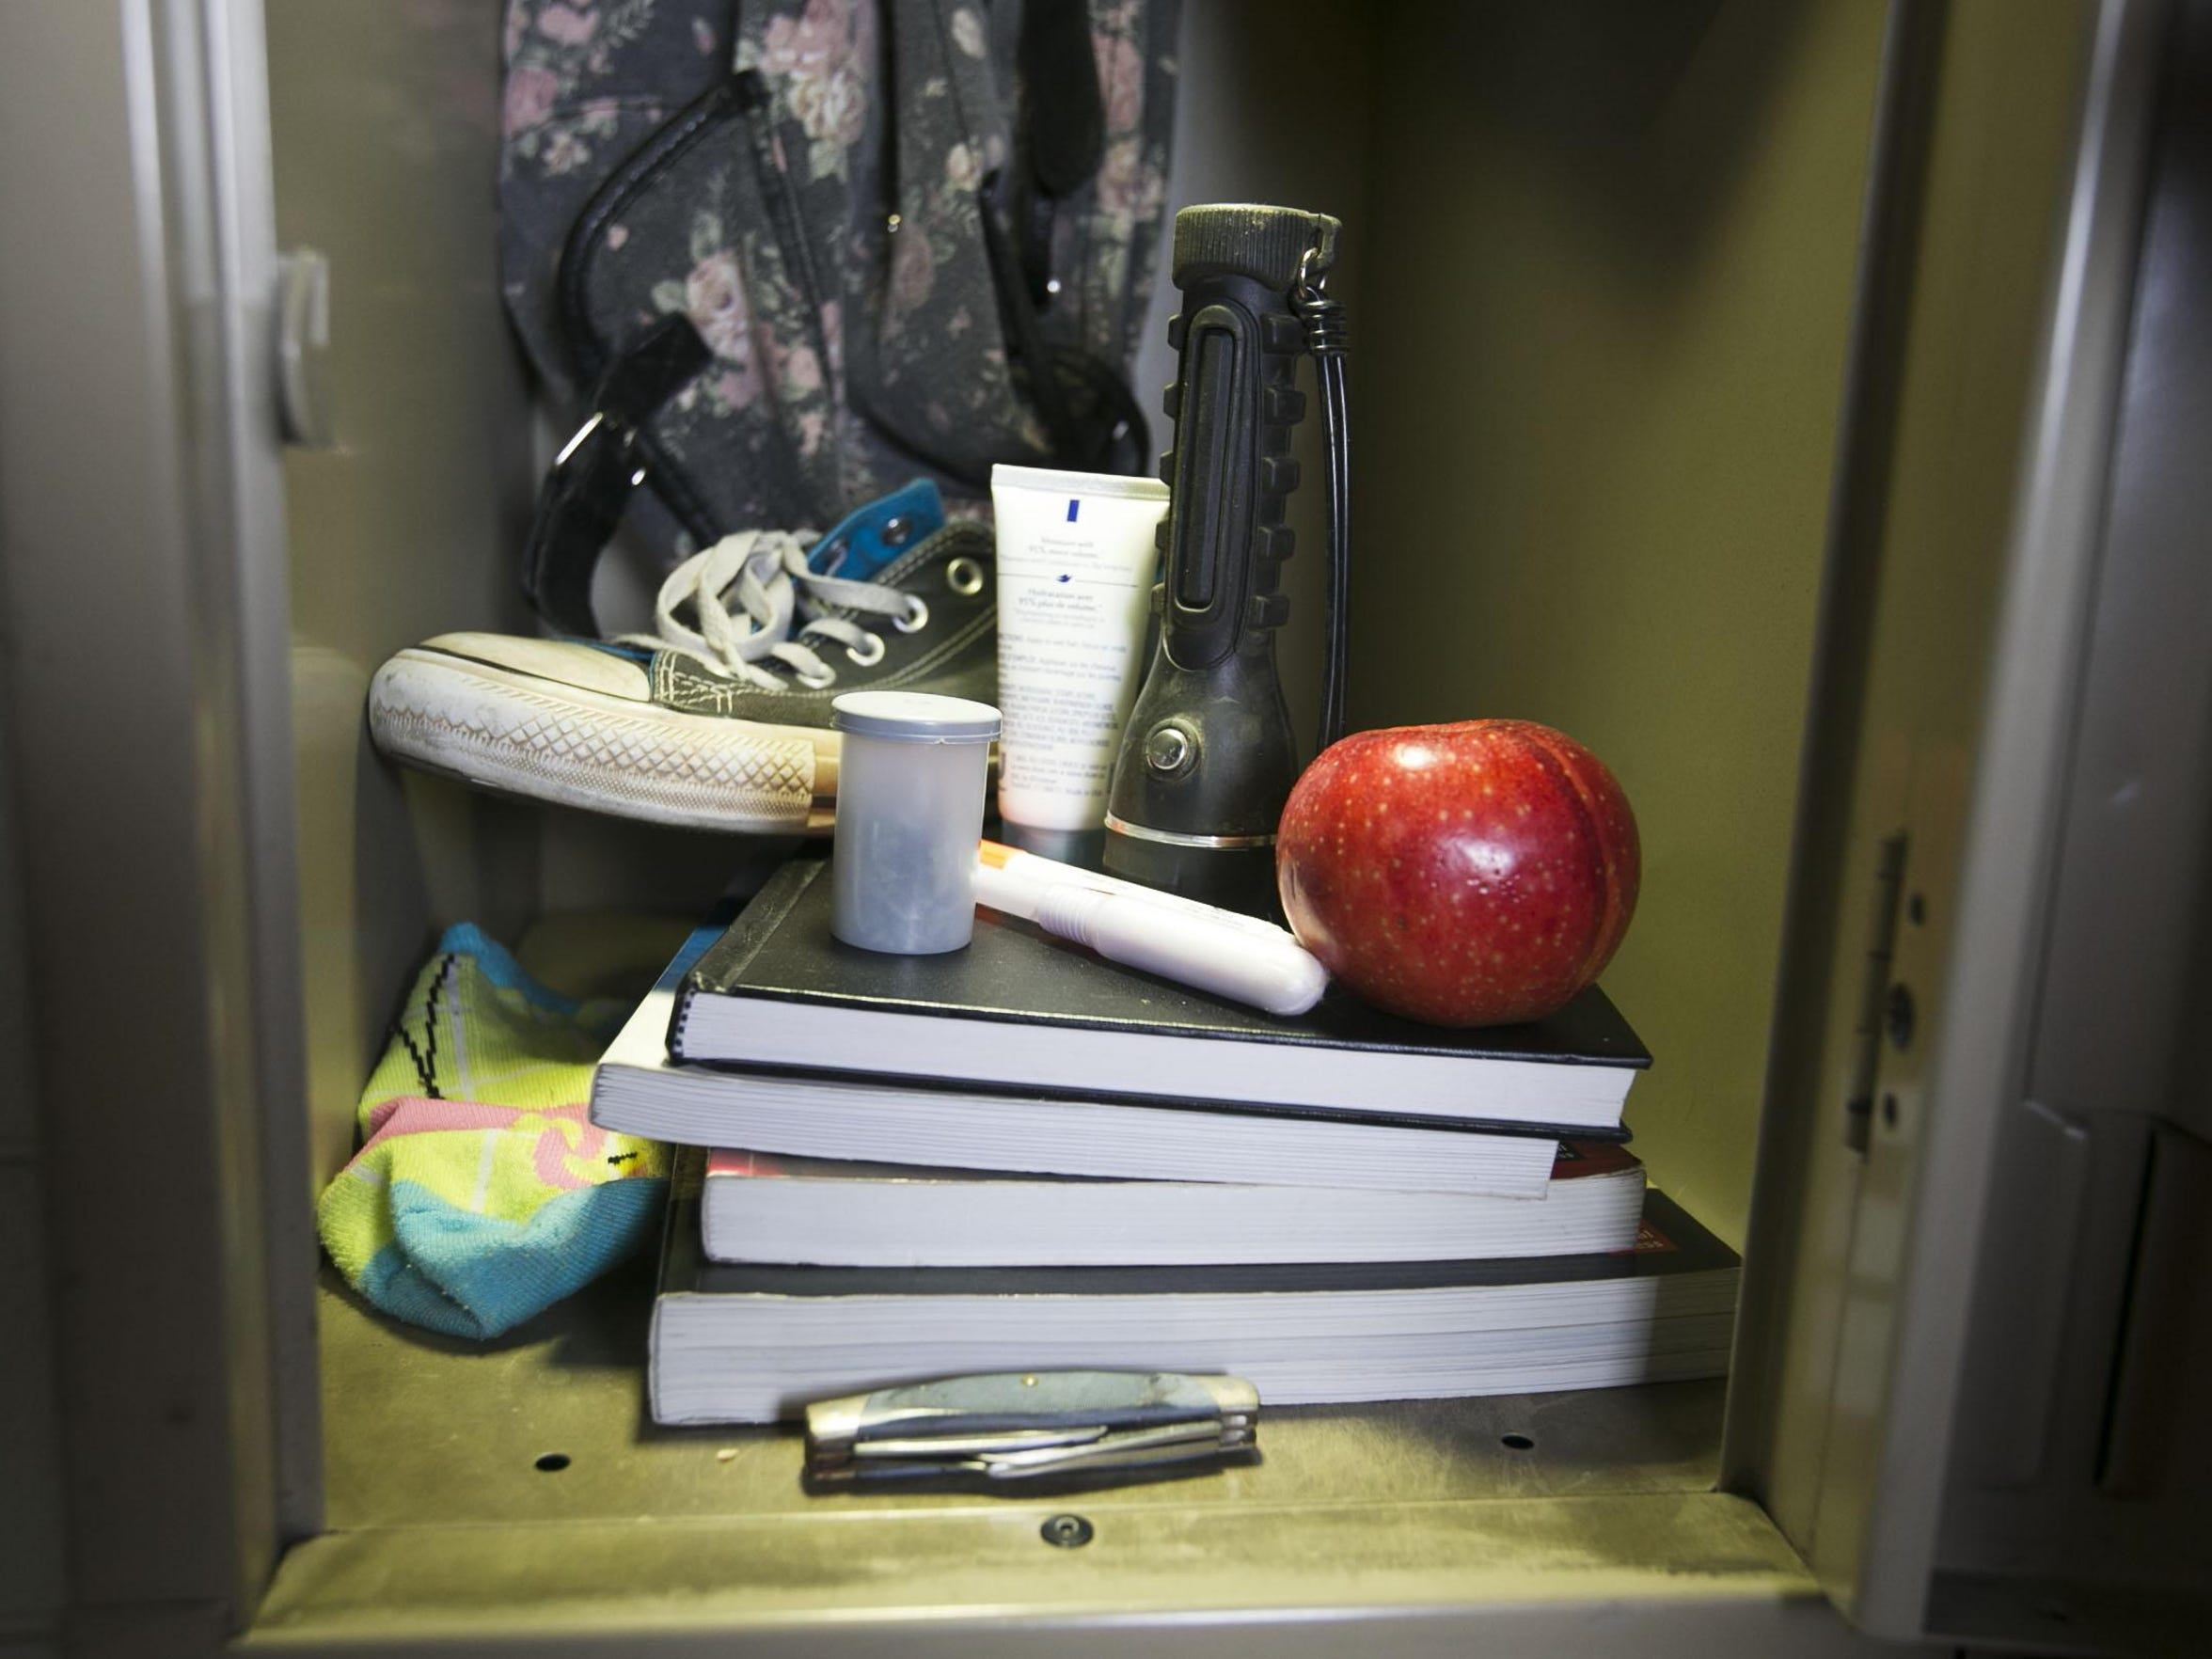 A few items students have used to conceal drugs at